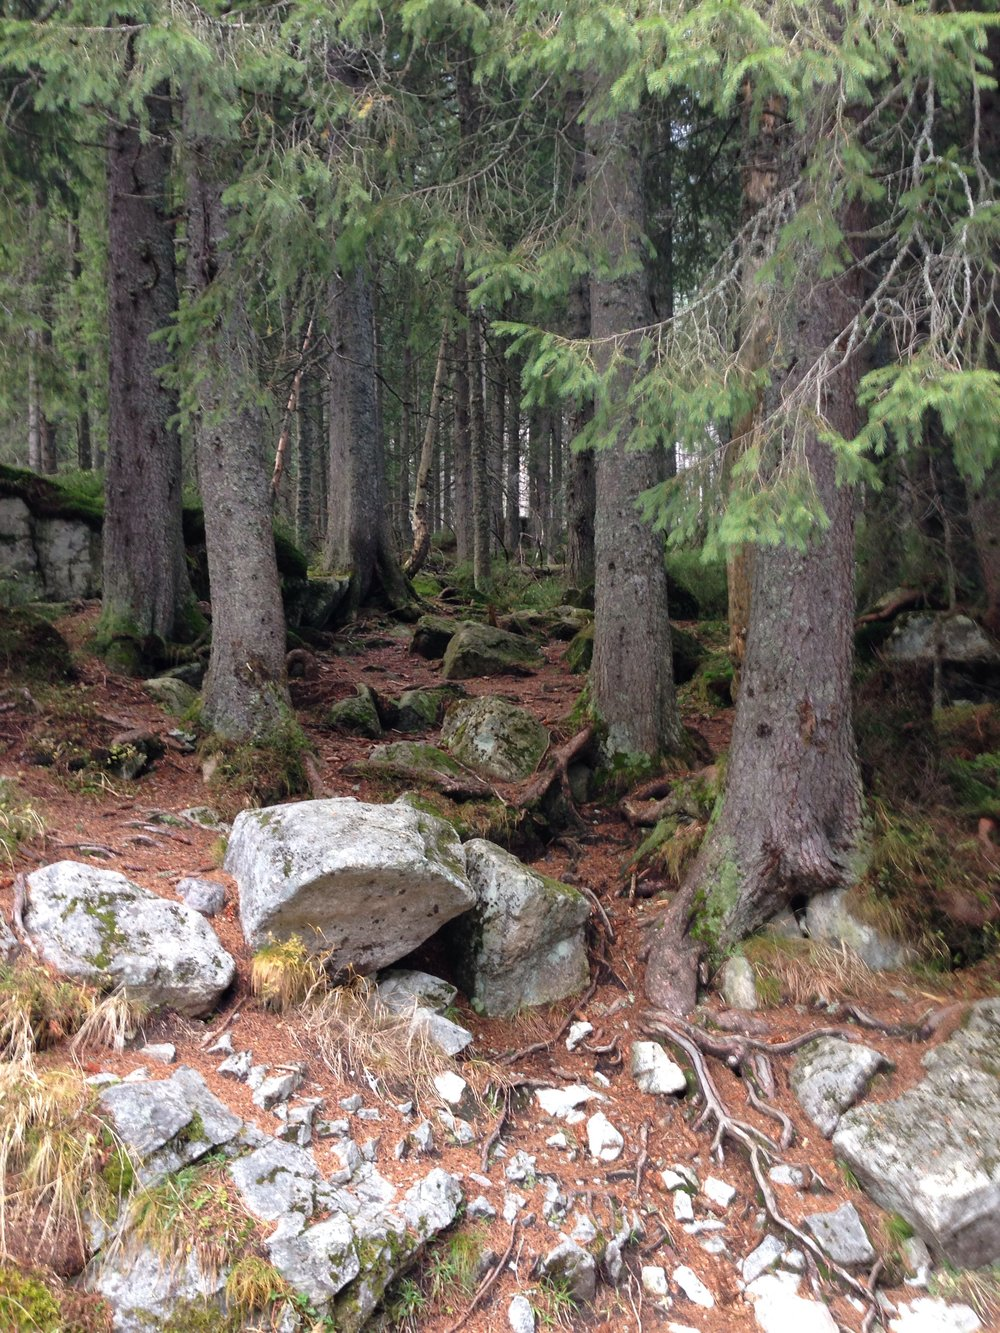 Trees in the Tatra National Forest